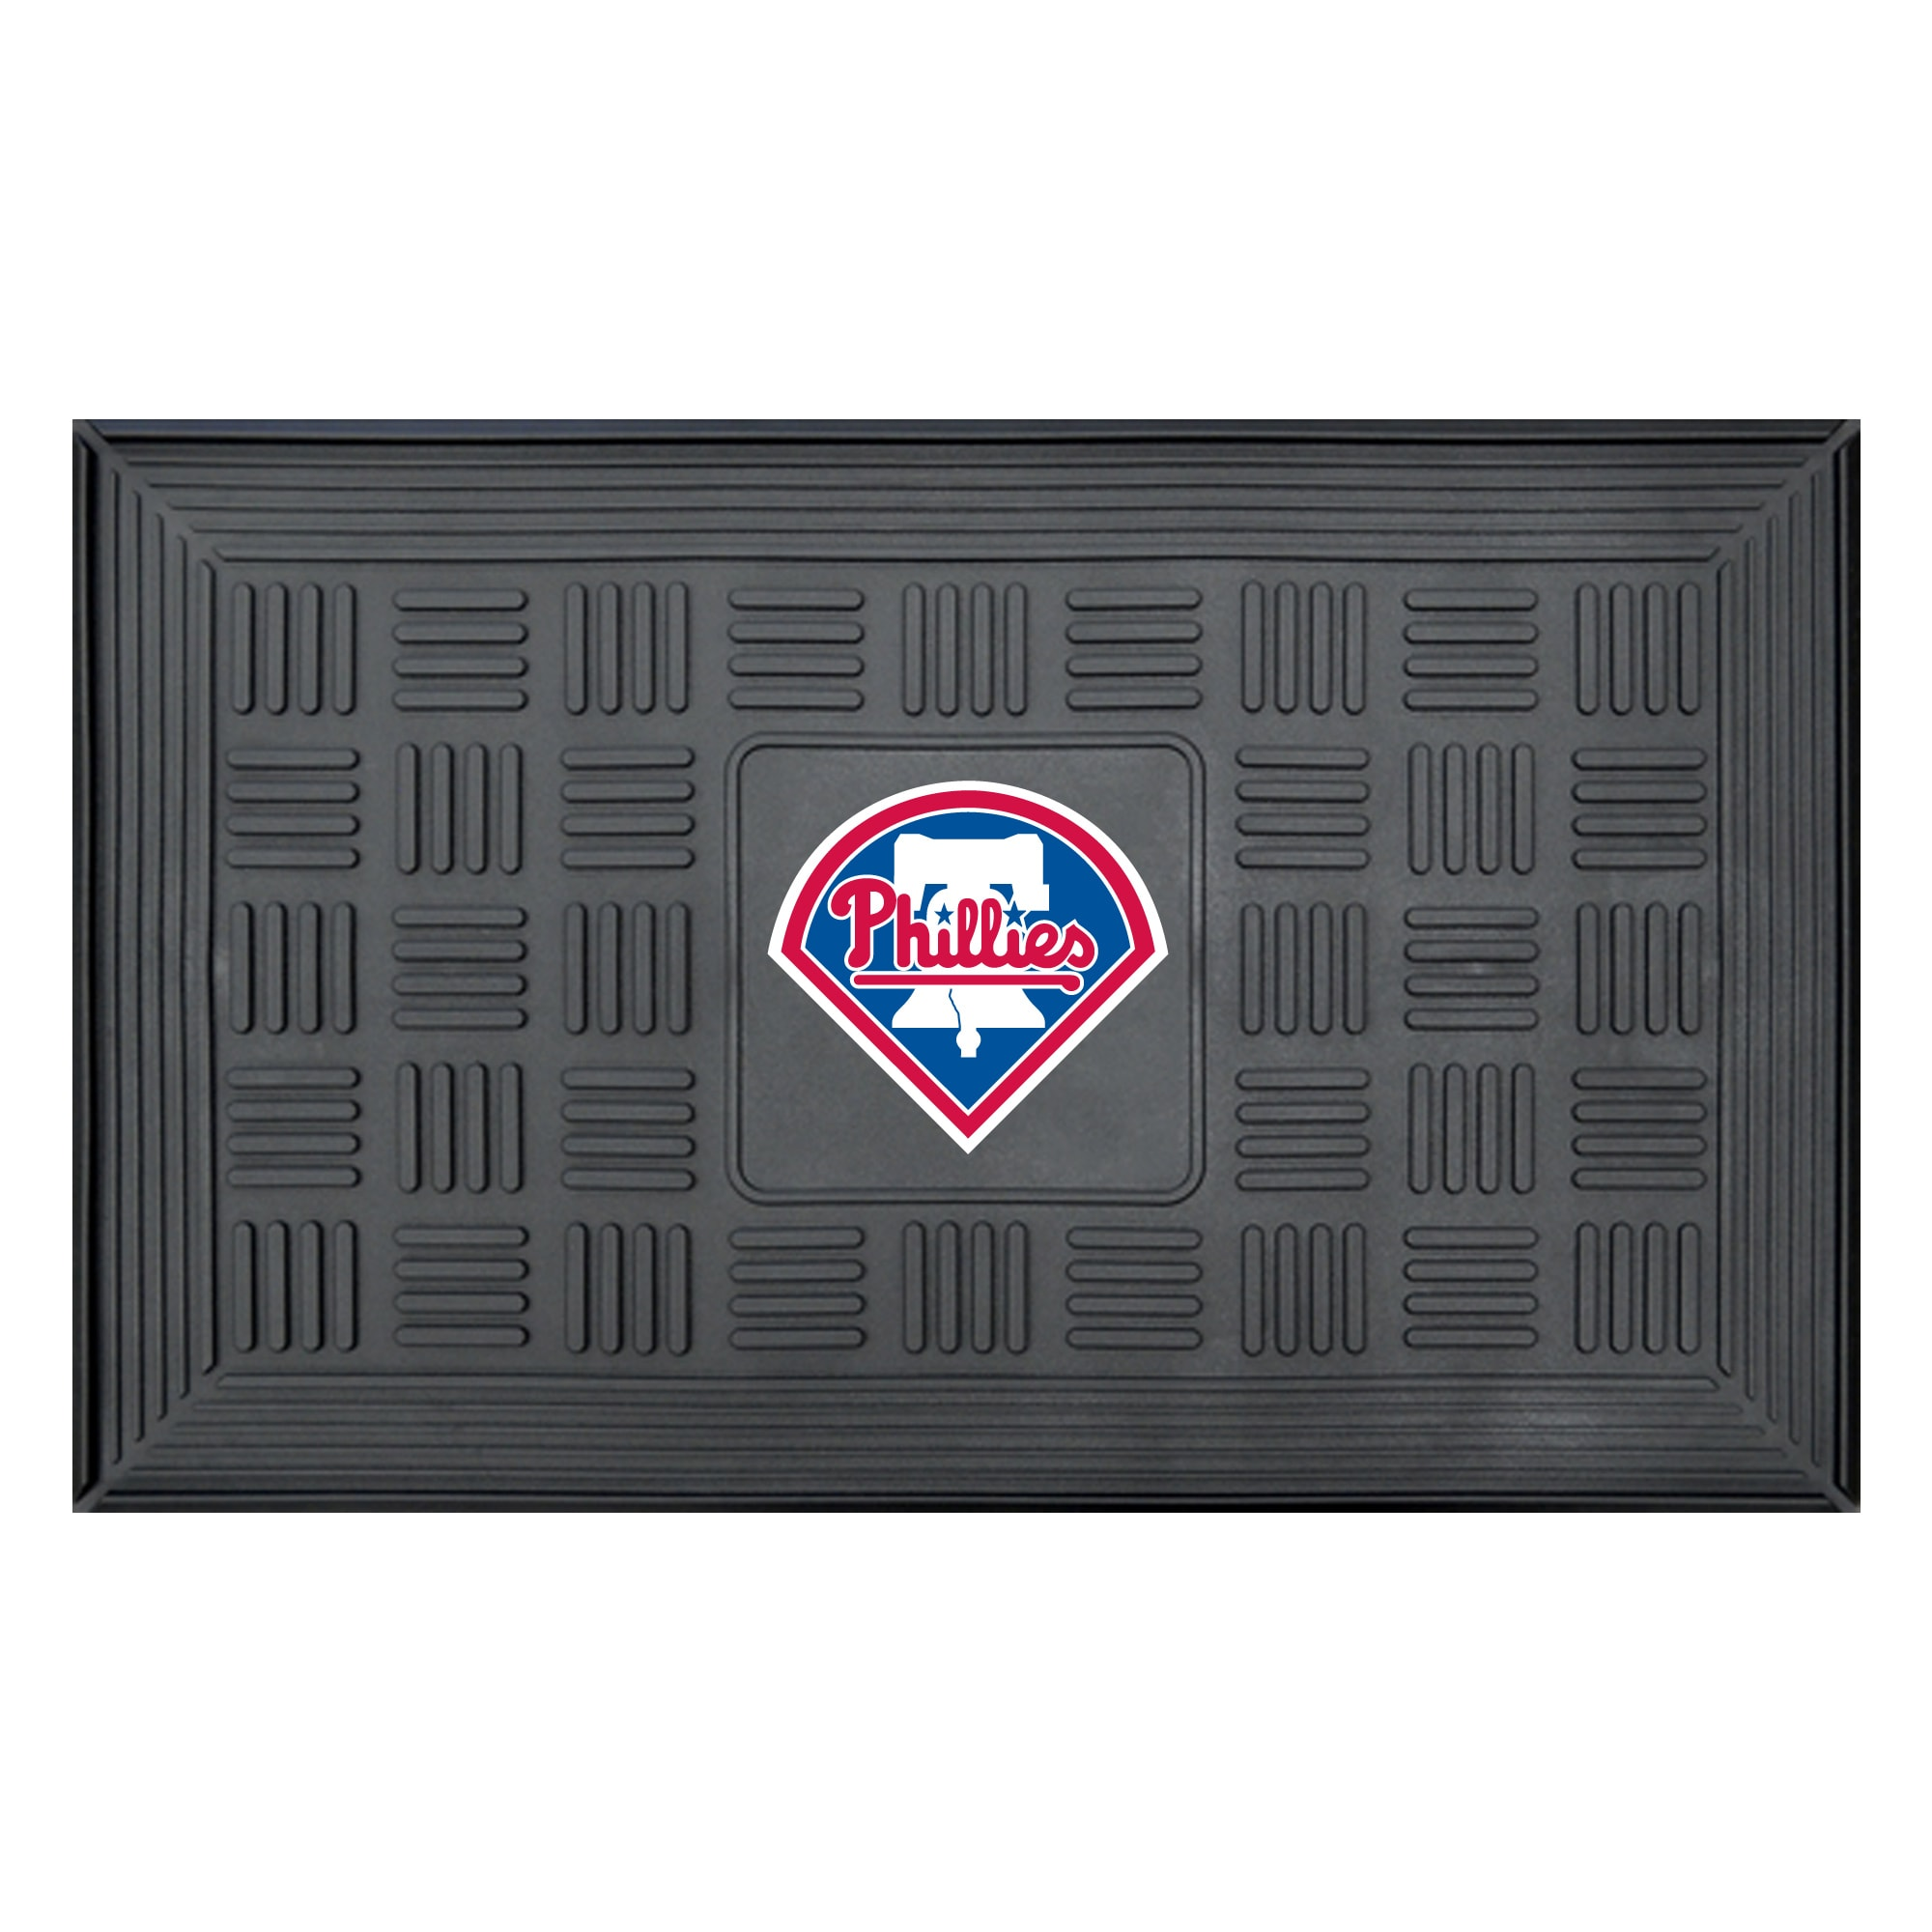 "Philadelphia Phillies 19"" x 30"" Vinyl Medallion Door Mat - Black"